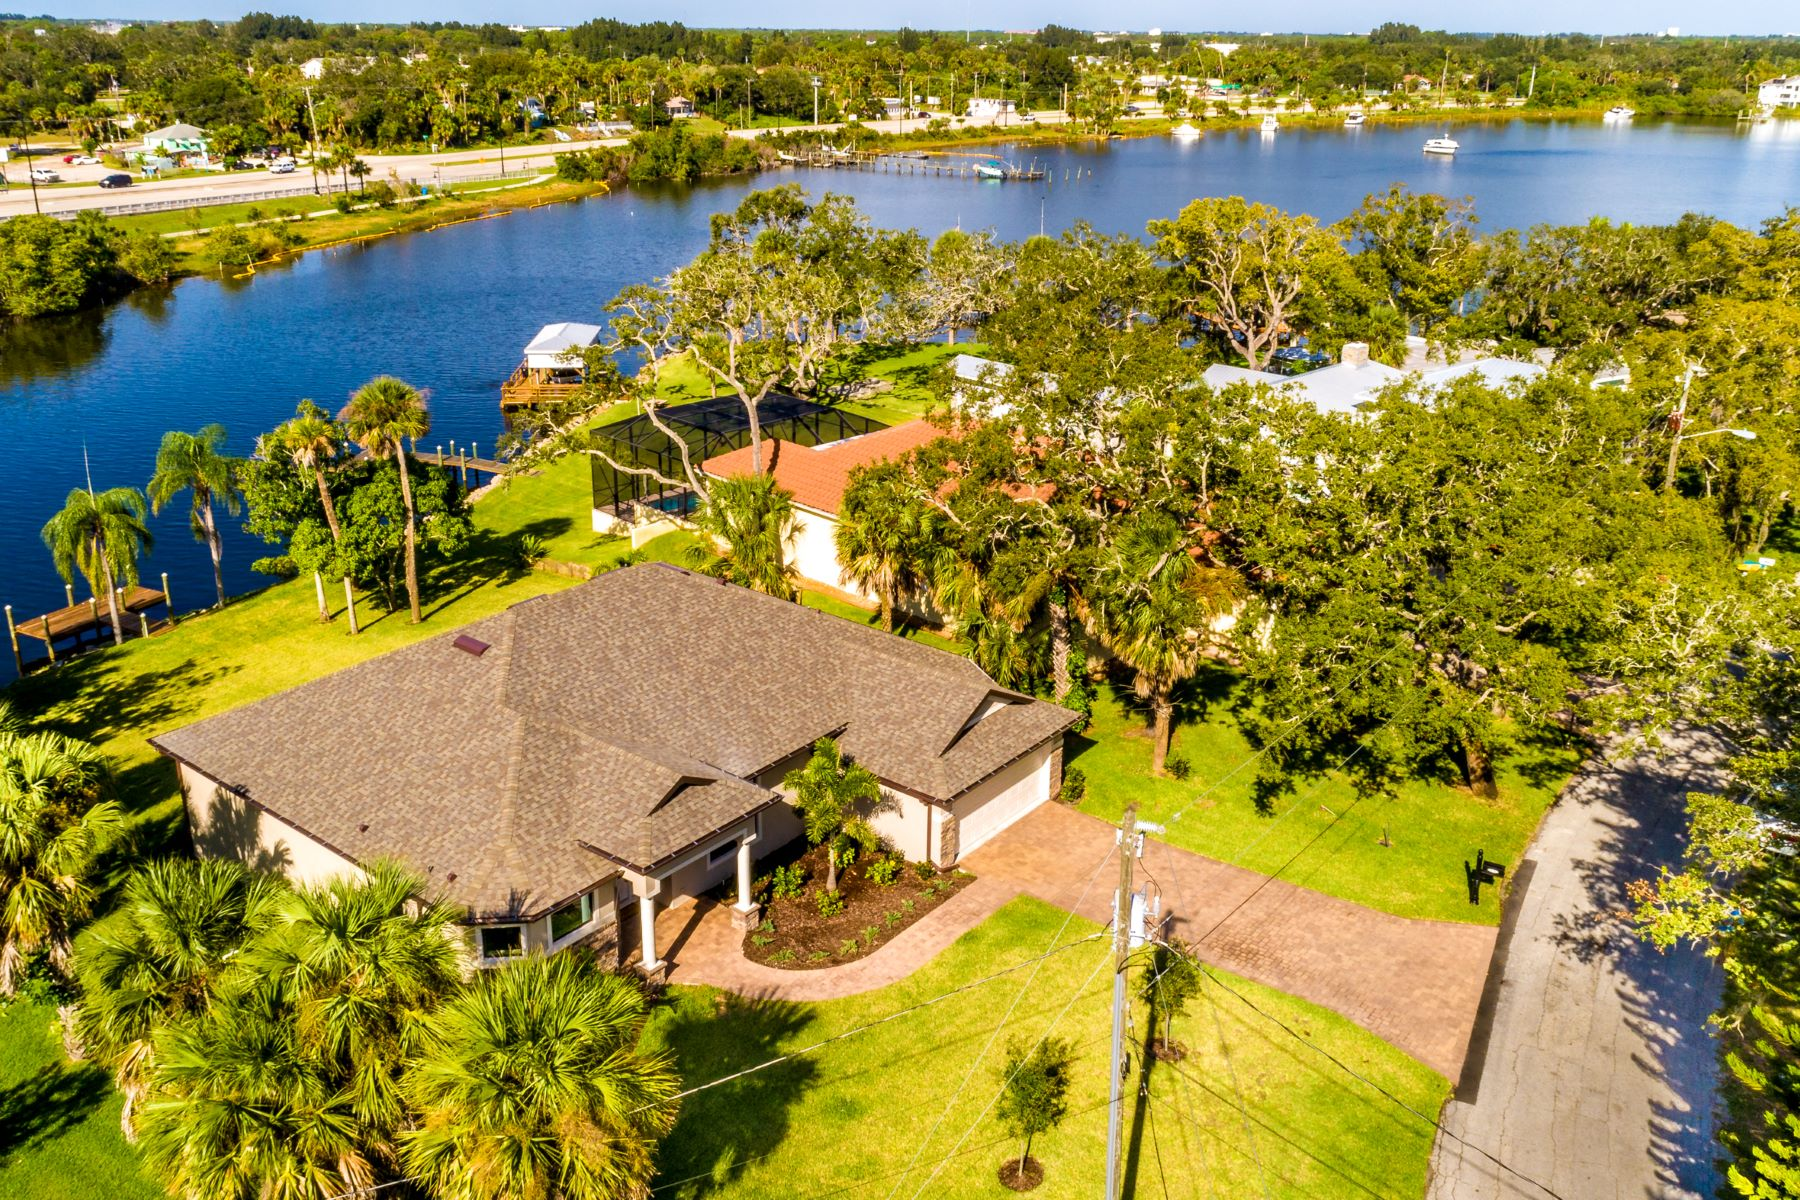 Single Family Homes for Sale at Brand New Waterfront Home in Palm Bay Point 1434 Herndon Ne Circle Palm Bay, Florida 32905 United States